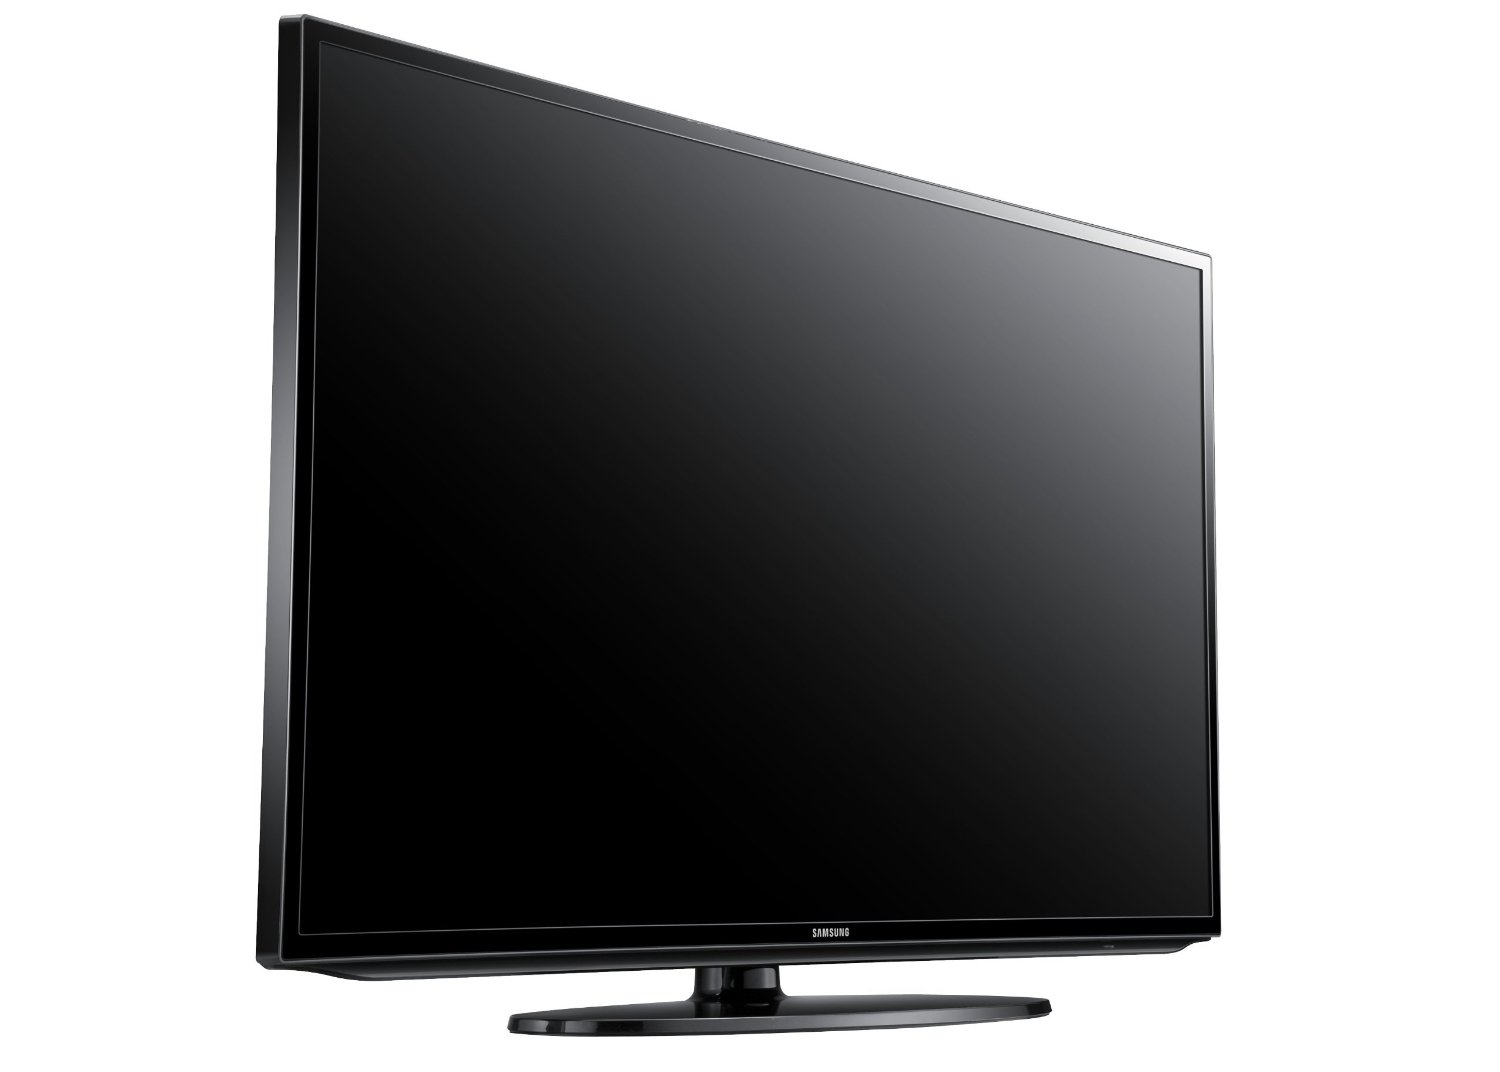 Enter to win this Samsung Smart TV at SheKnows.com!